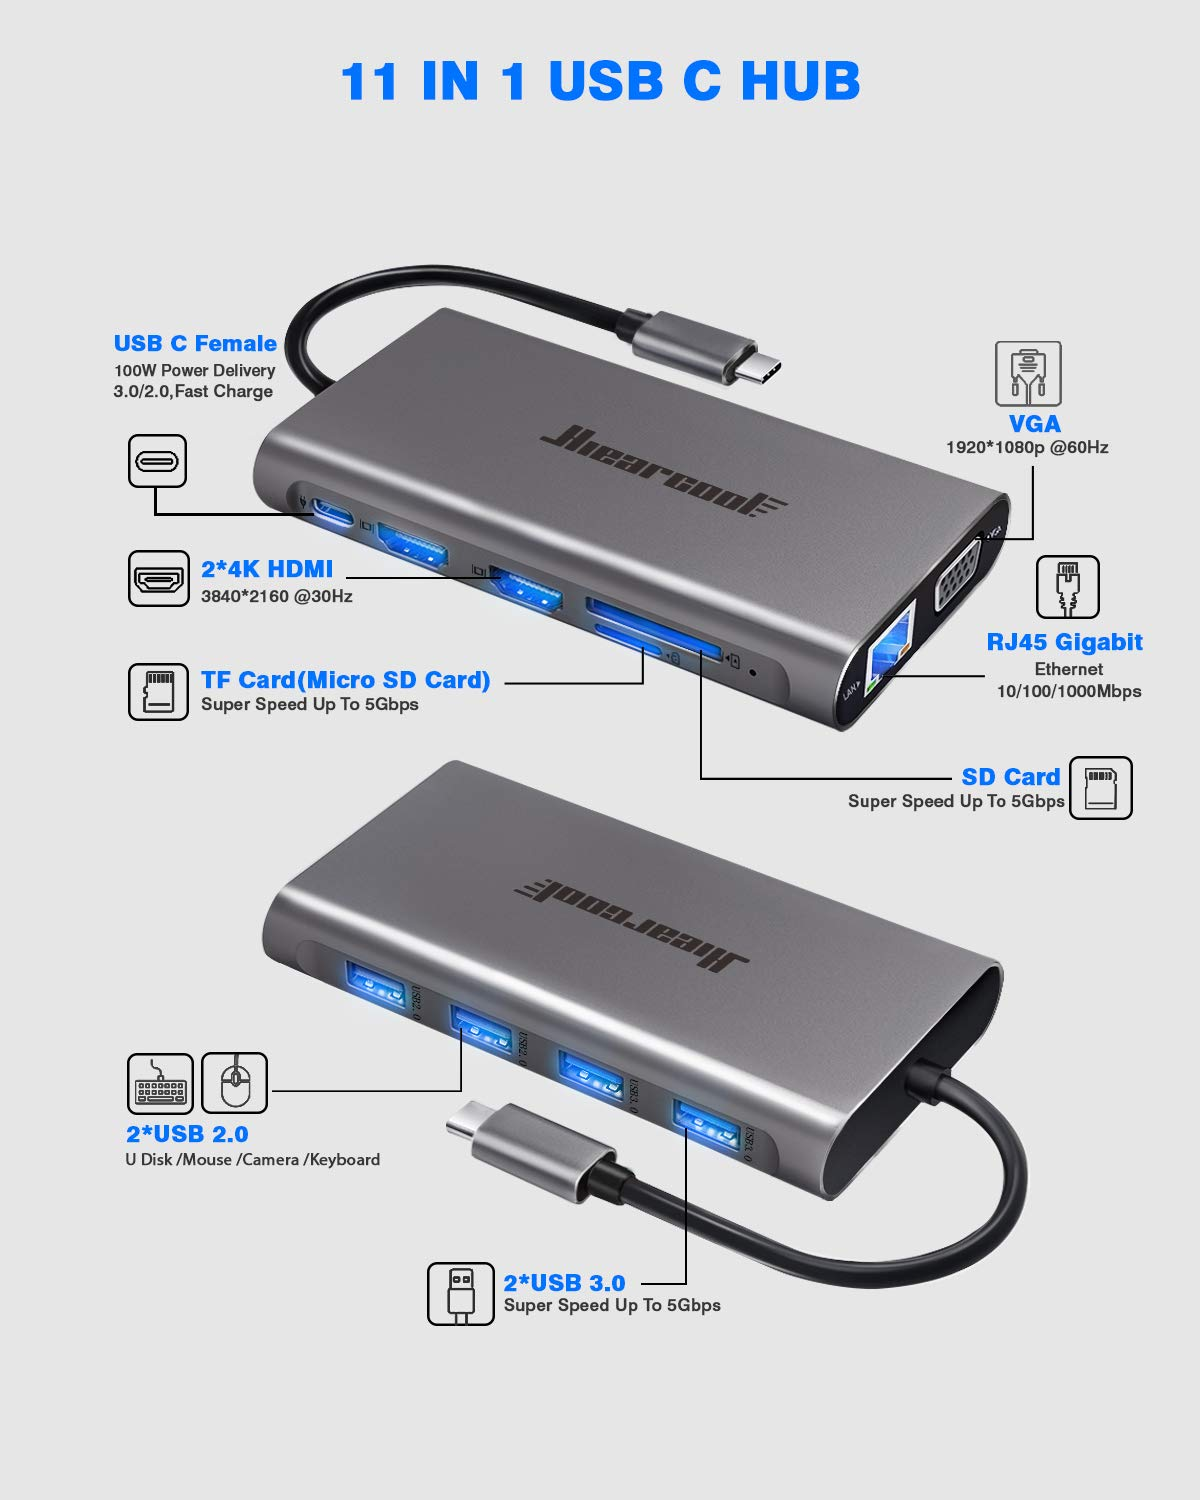 Hiearcool USB C Hub,USB-C Laptop Docking Station,11 in 1 Triple Display Type C Adapter Compatiable for MacBook and Windows(2HDMI VGA PD3.0 SD TF Card Reader Gigabit Ethernet 4USB Ports) by Hiearcool (Image #2)